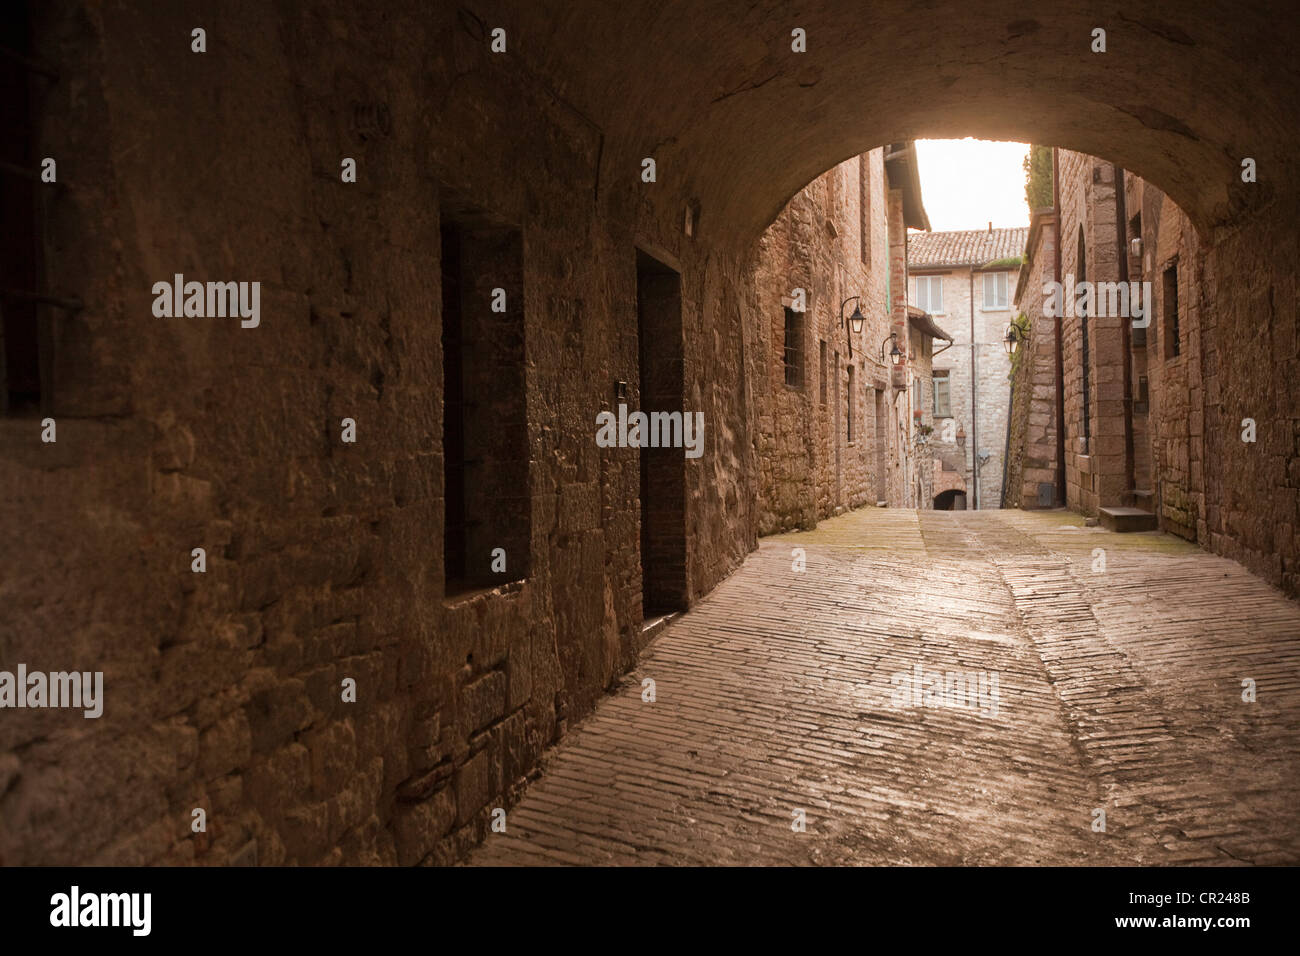 Cobbled archway in village - Stock Image